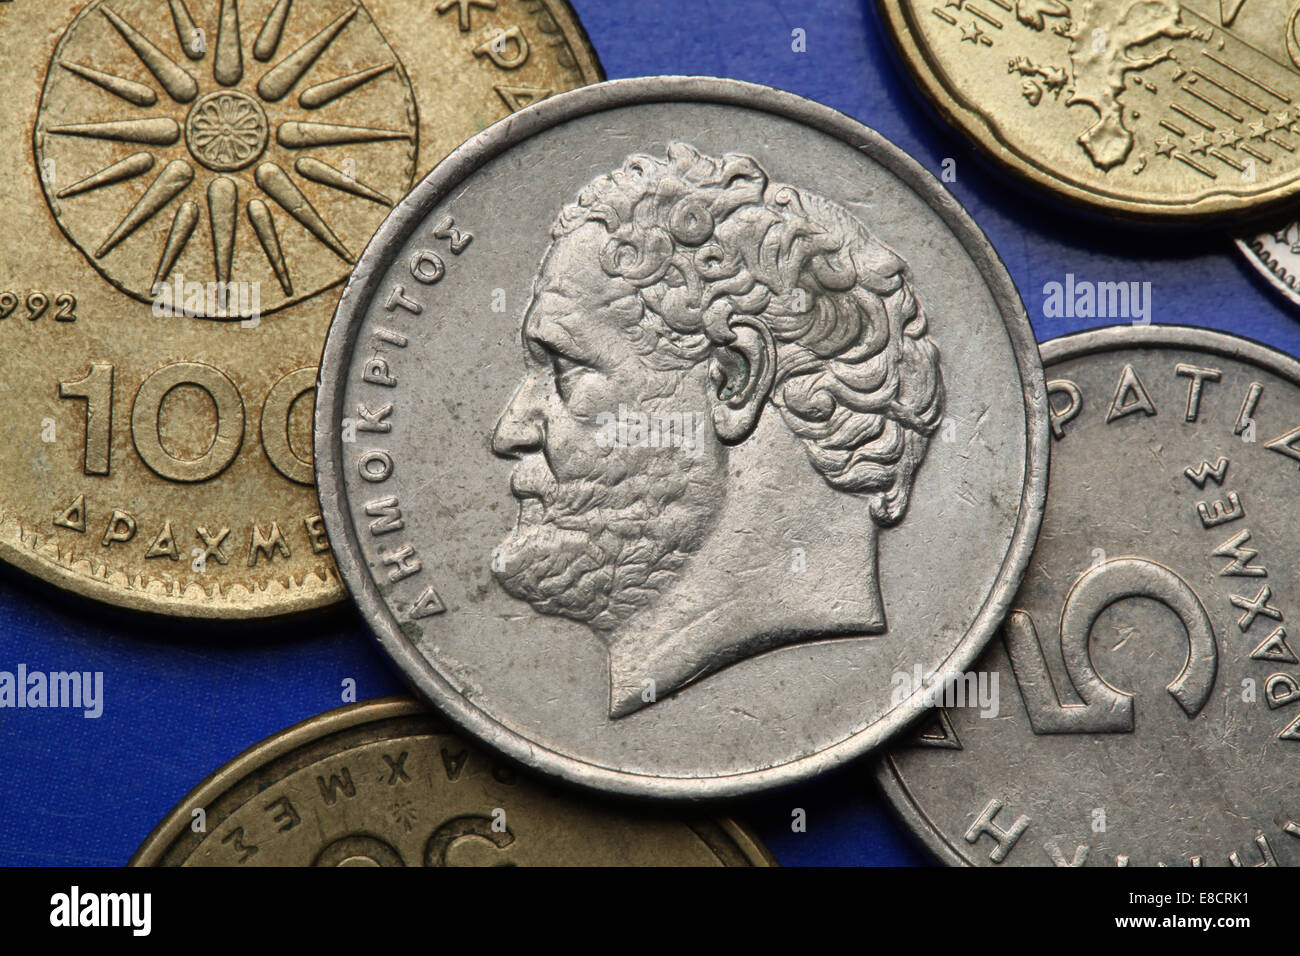 Coins of Greece. Greek philosopher Democritus depicted in the old Greek 10 drachma coin. - Stock Image